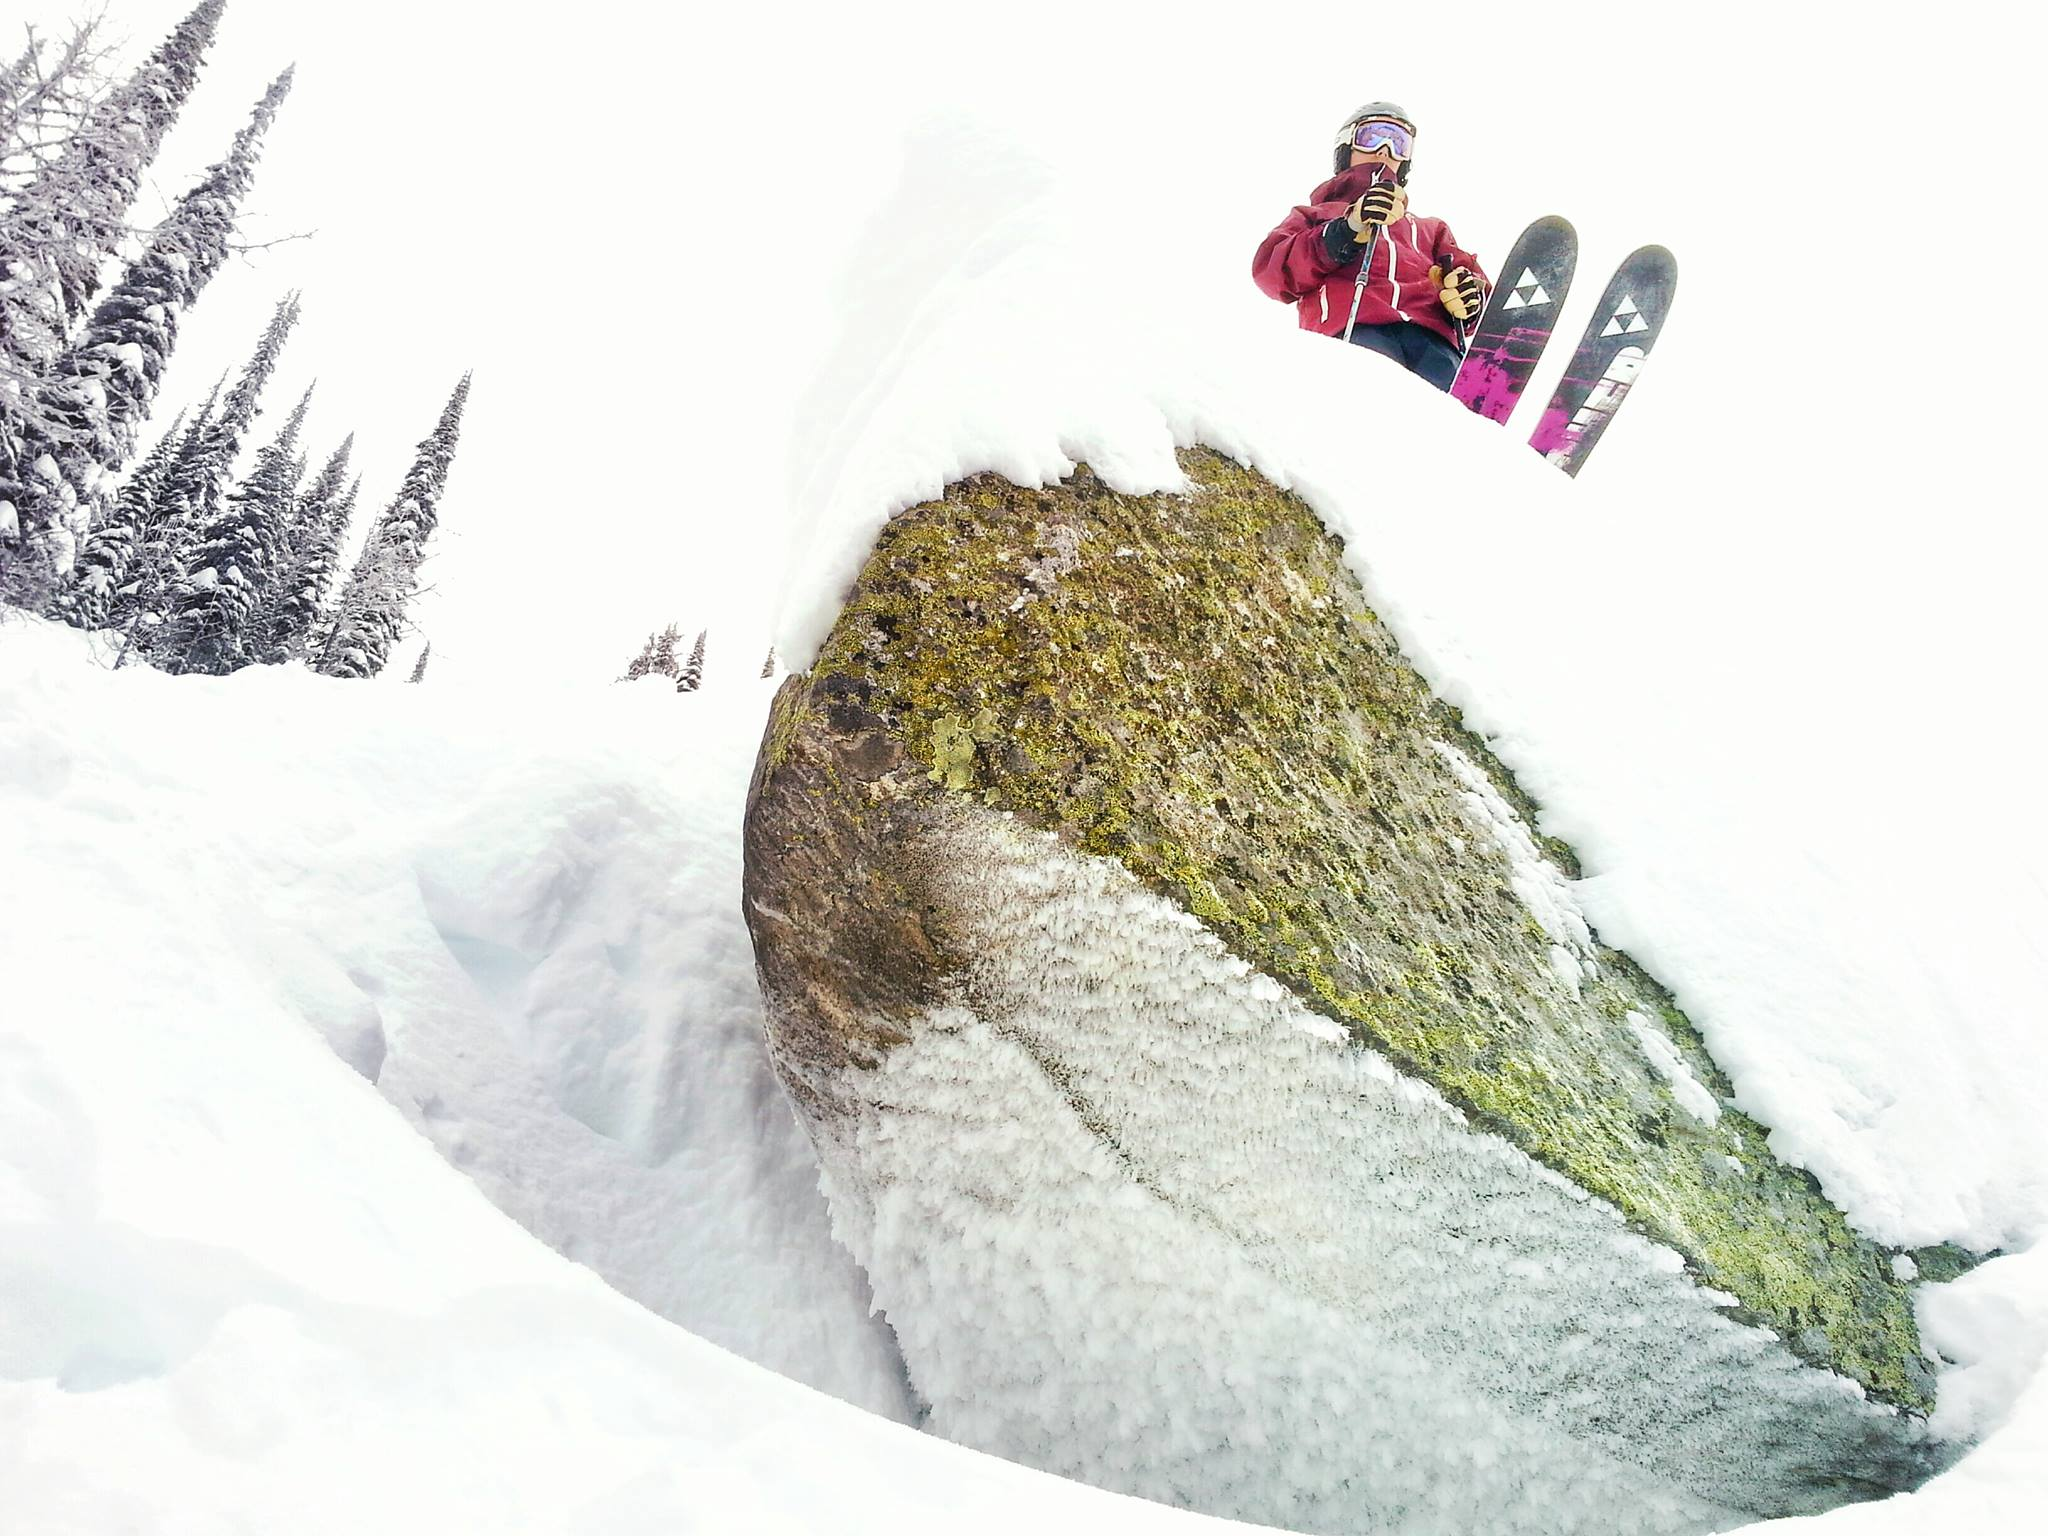 Skier scopes out the landing on a terrain feature at Whitewater Ski Resort in Nelson. Photo: Gina Bégin